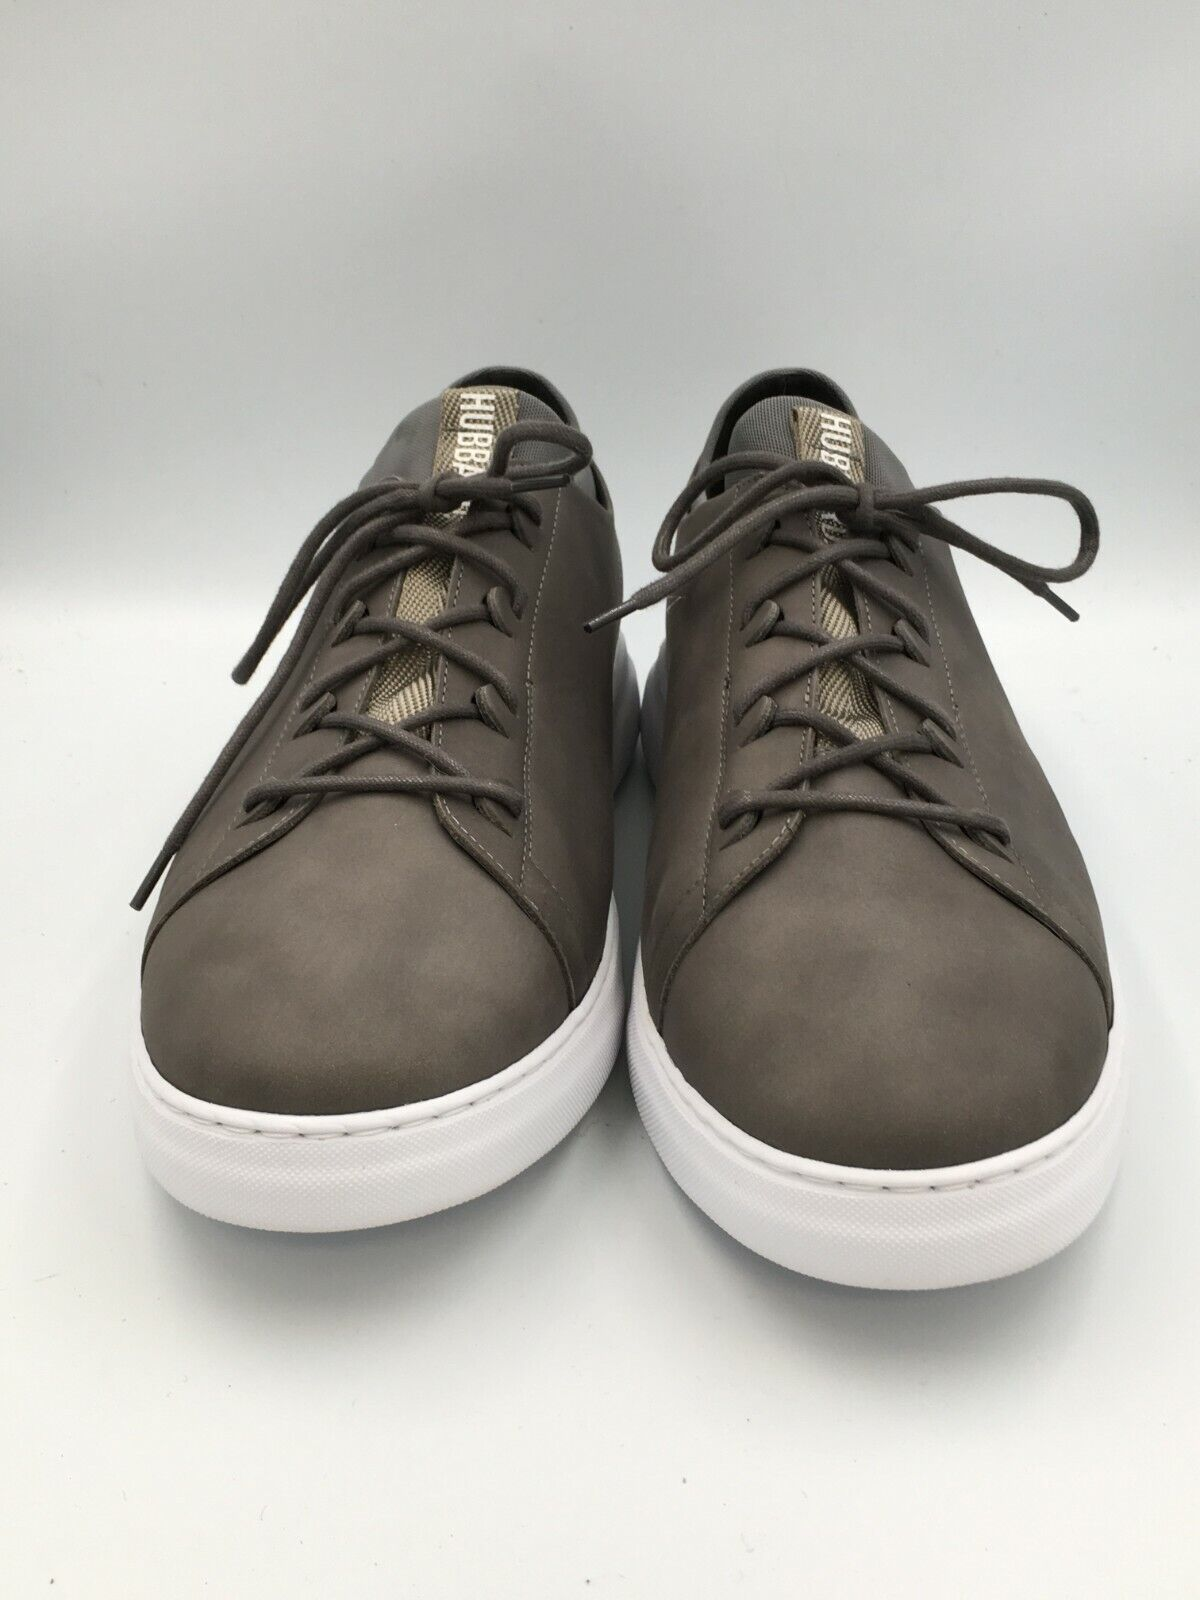 Samuel Hubbard Men s 13W Flight Casual Sneaker Gray Leather 1260 - $75.00